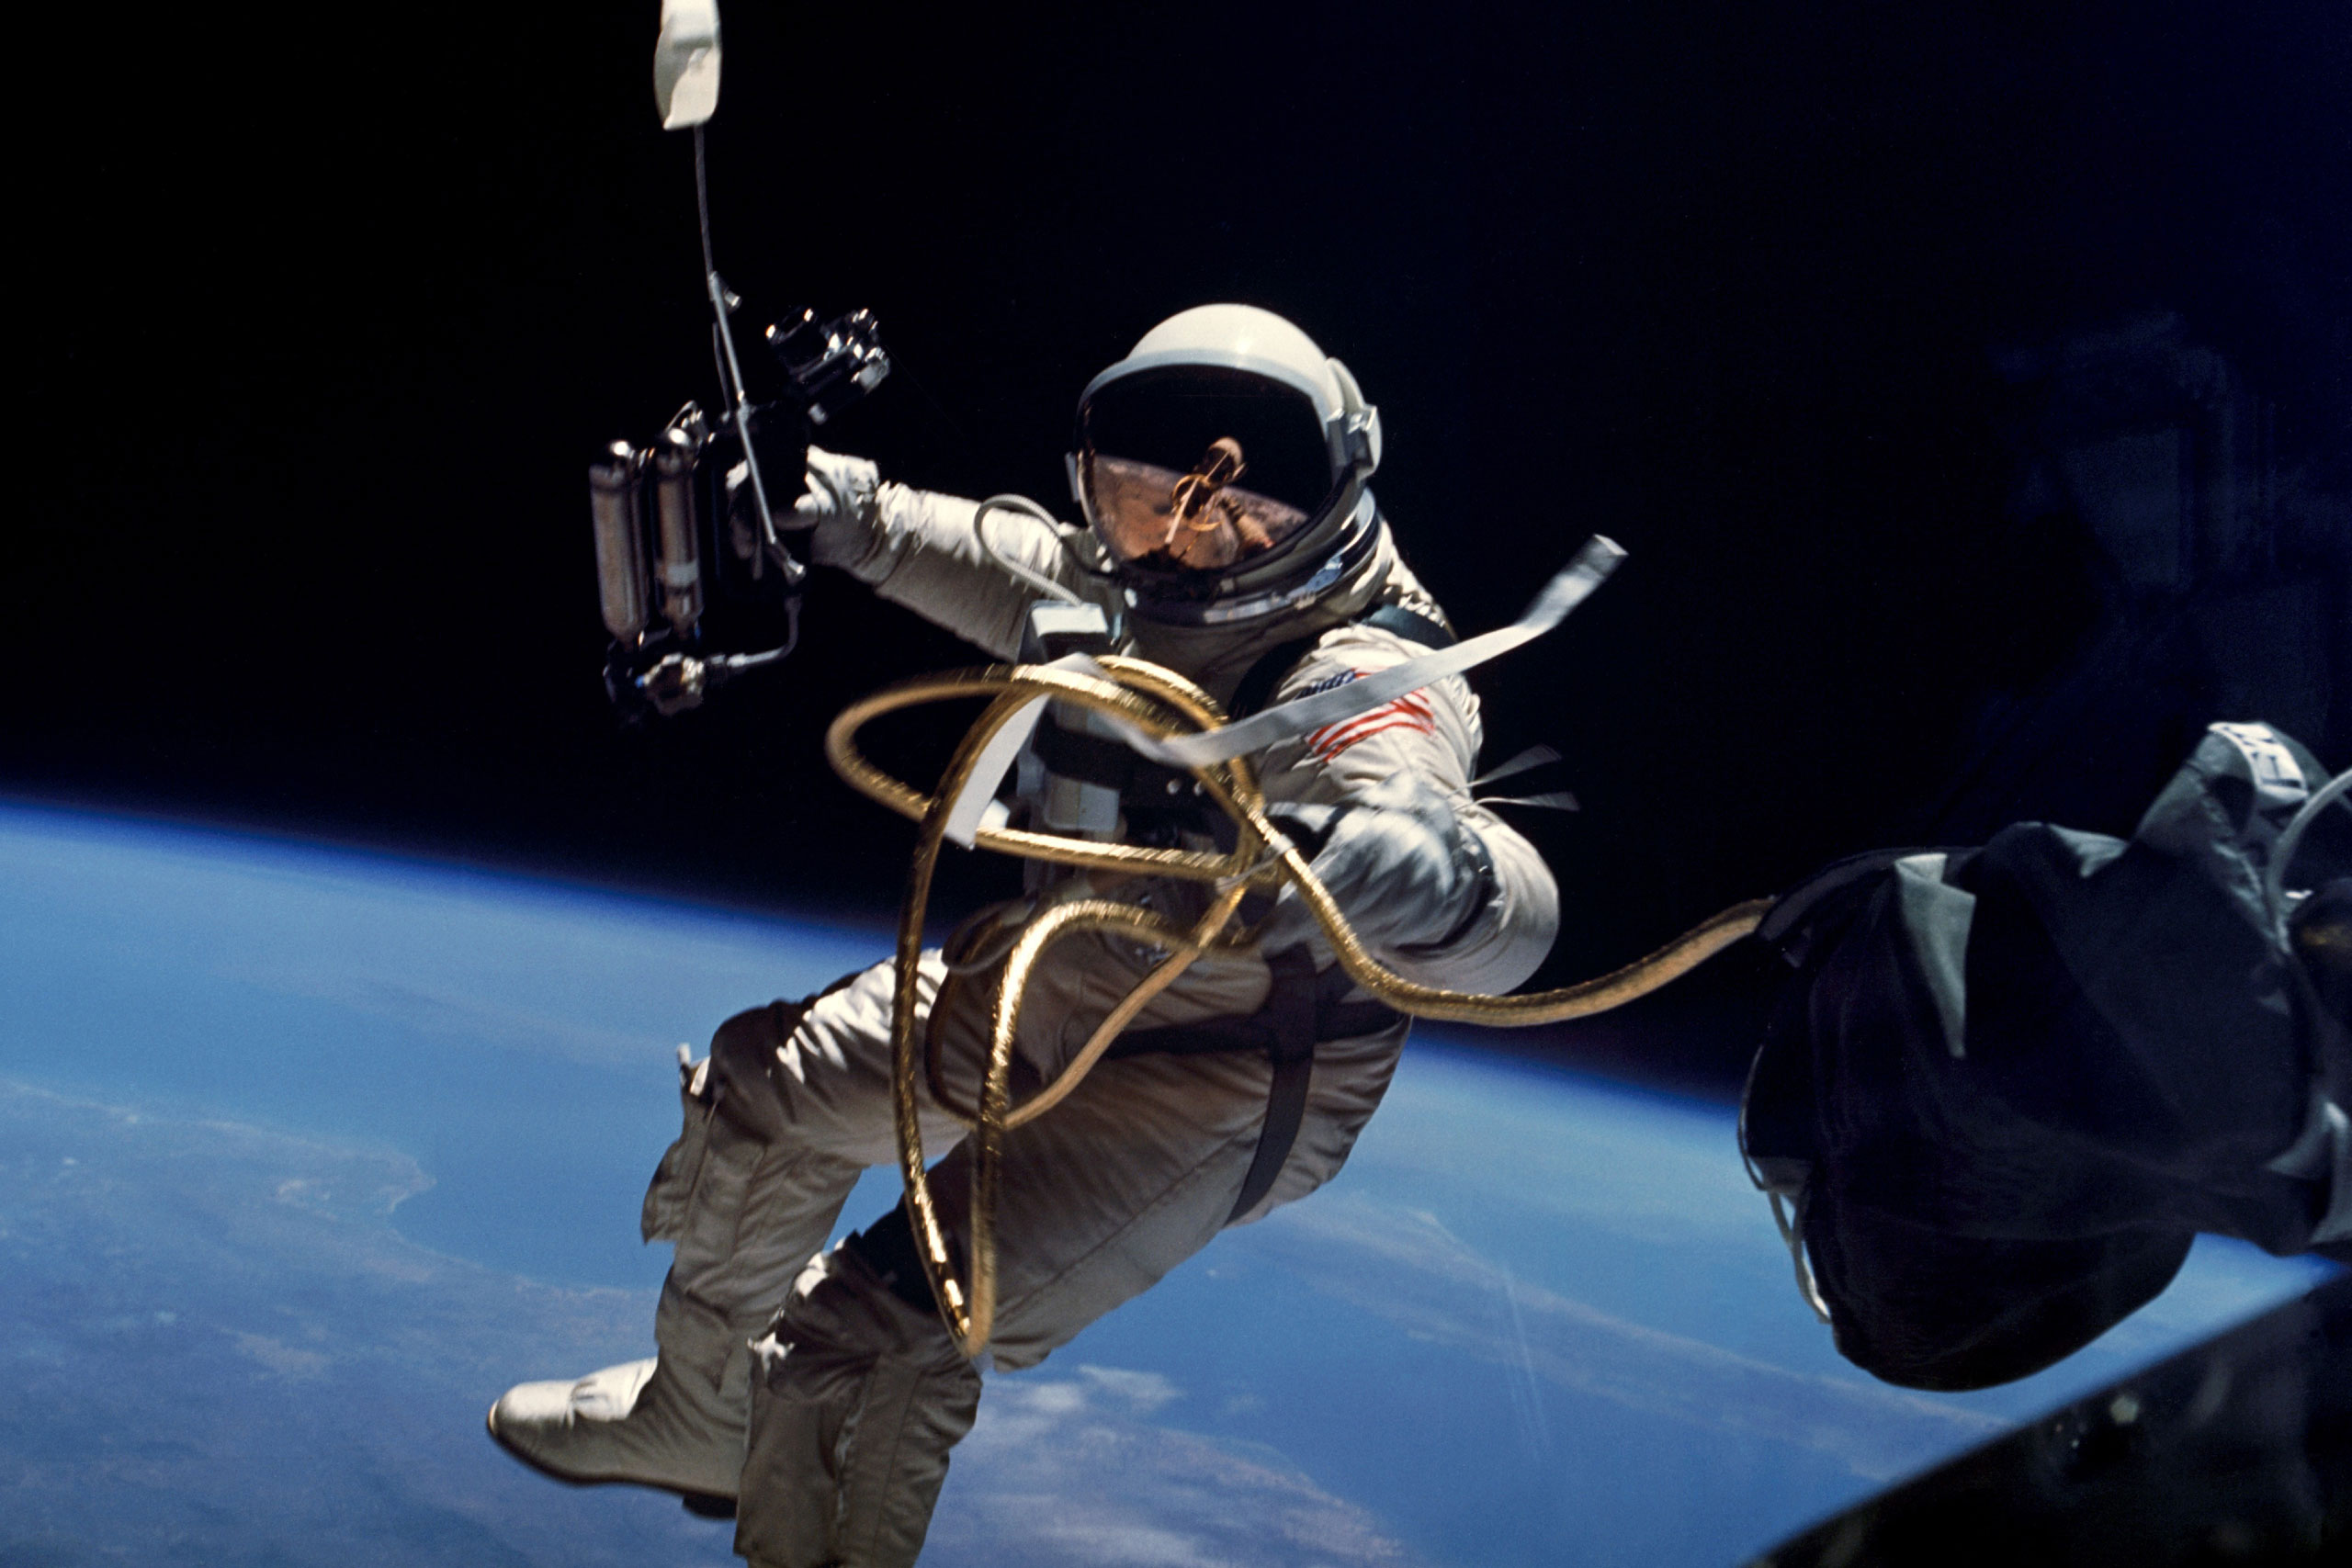 Astronaut Edward H. White II, pilot for the Gemini-Titan 4 space flight, floats in space during America's first spacewalk on June 3, 1965